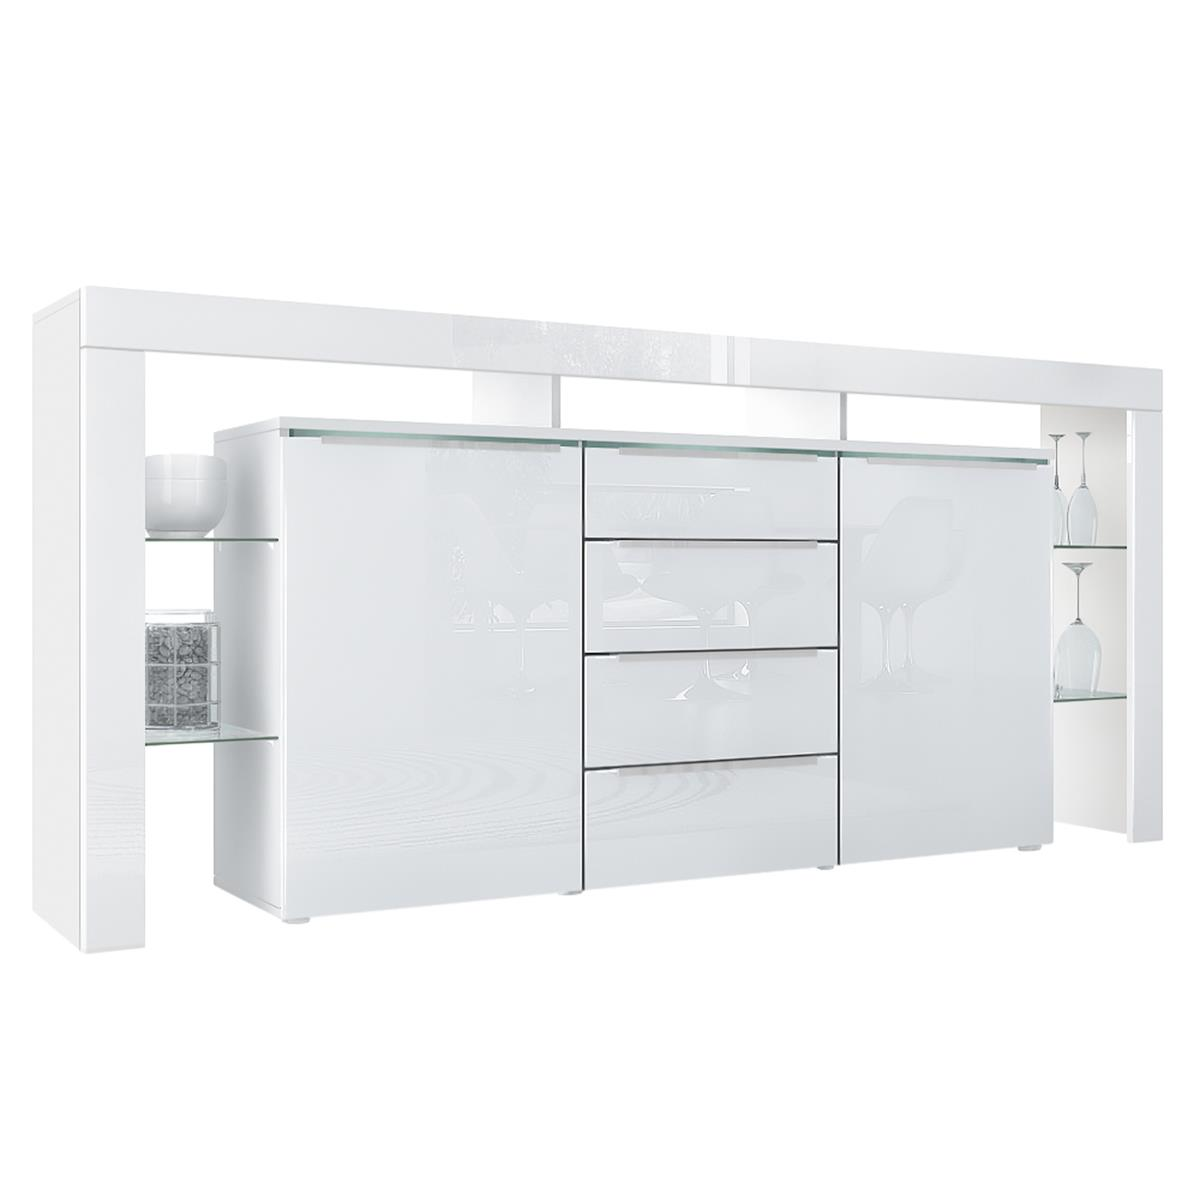 Weiße Sideboards Sideboard Lima Nova Mit Regalaufbau Glaselemente And Led